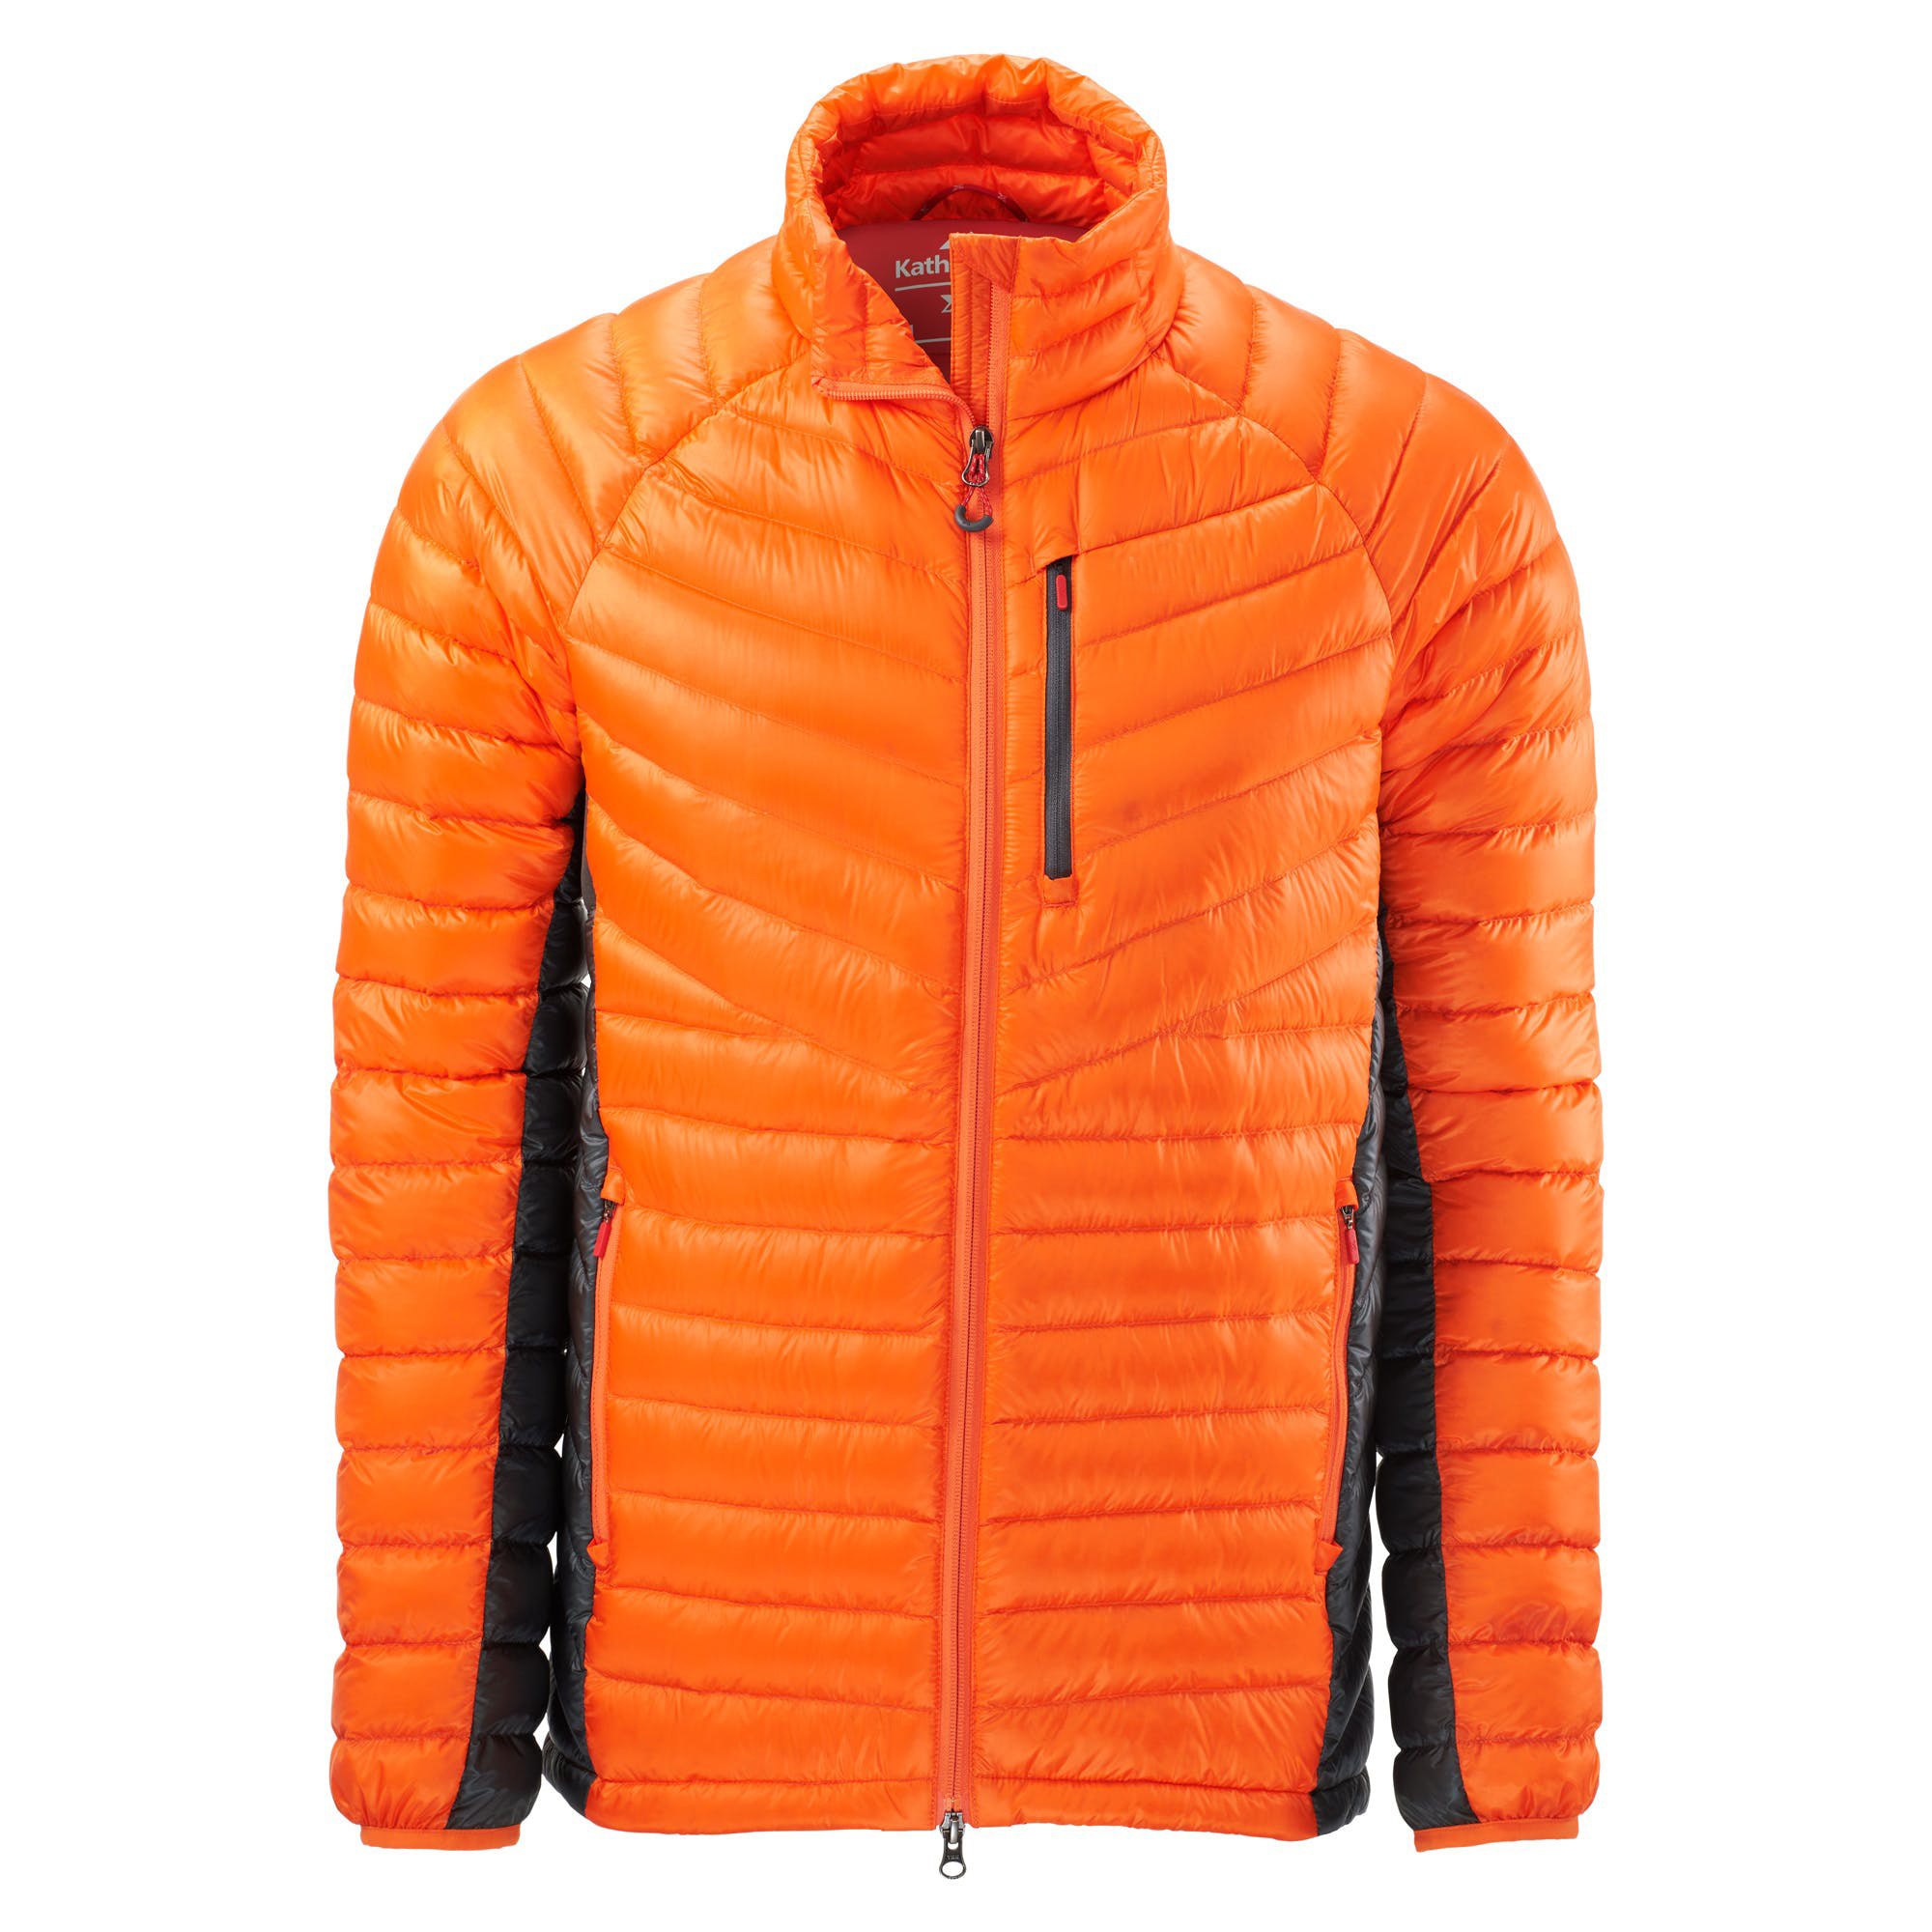 The XT Ultralight Down Jacket v2